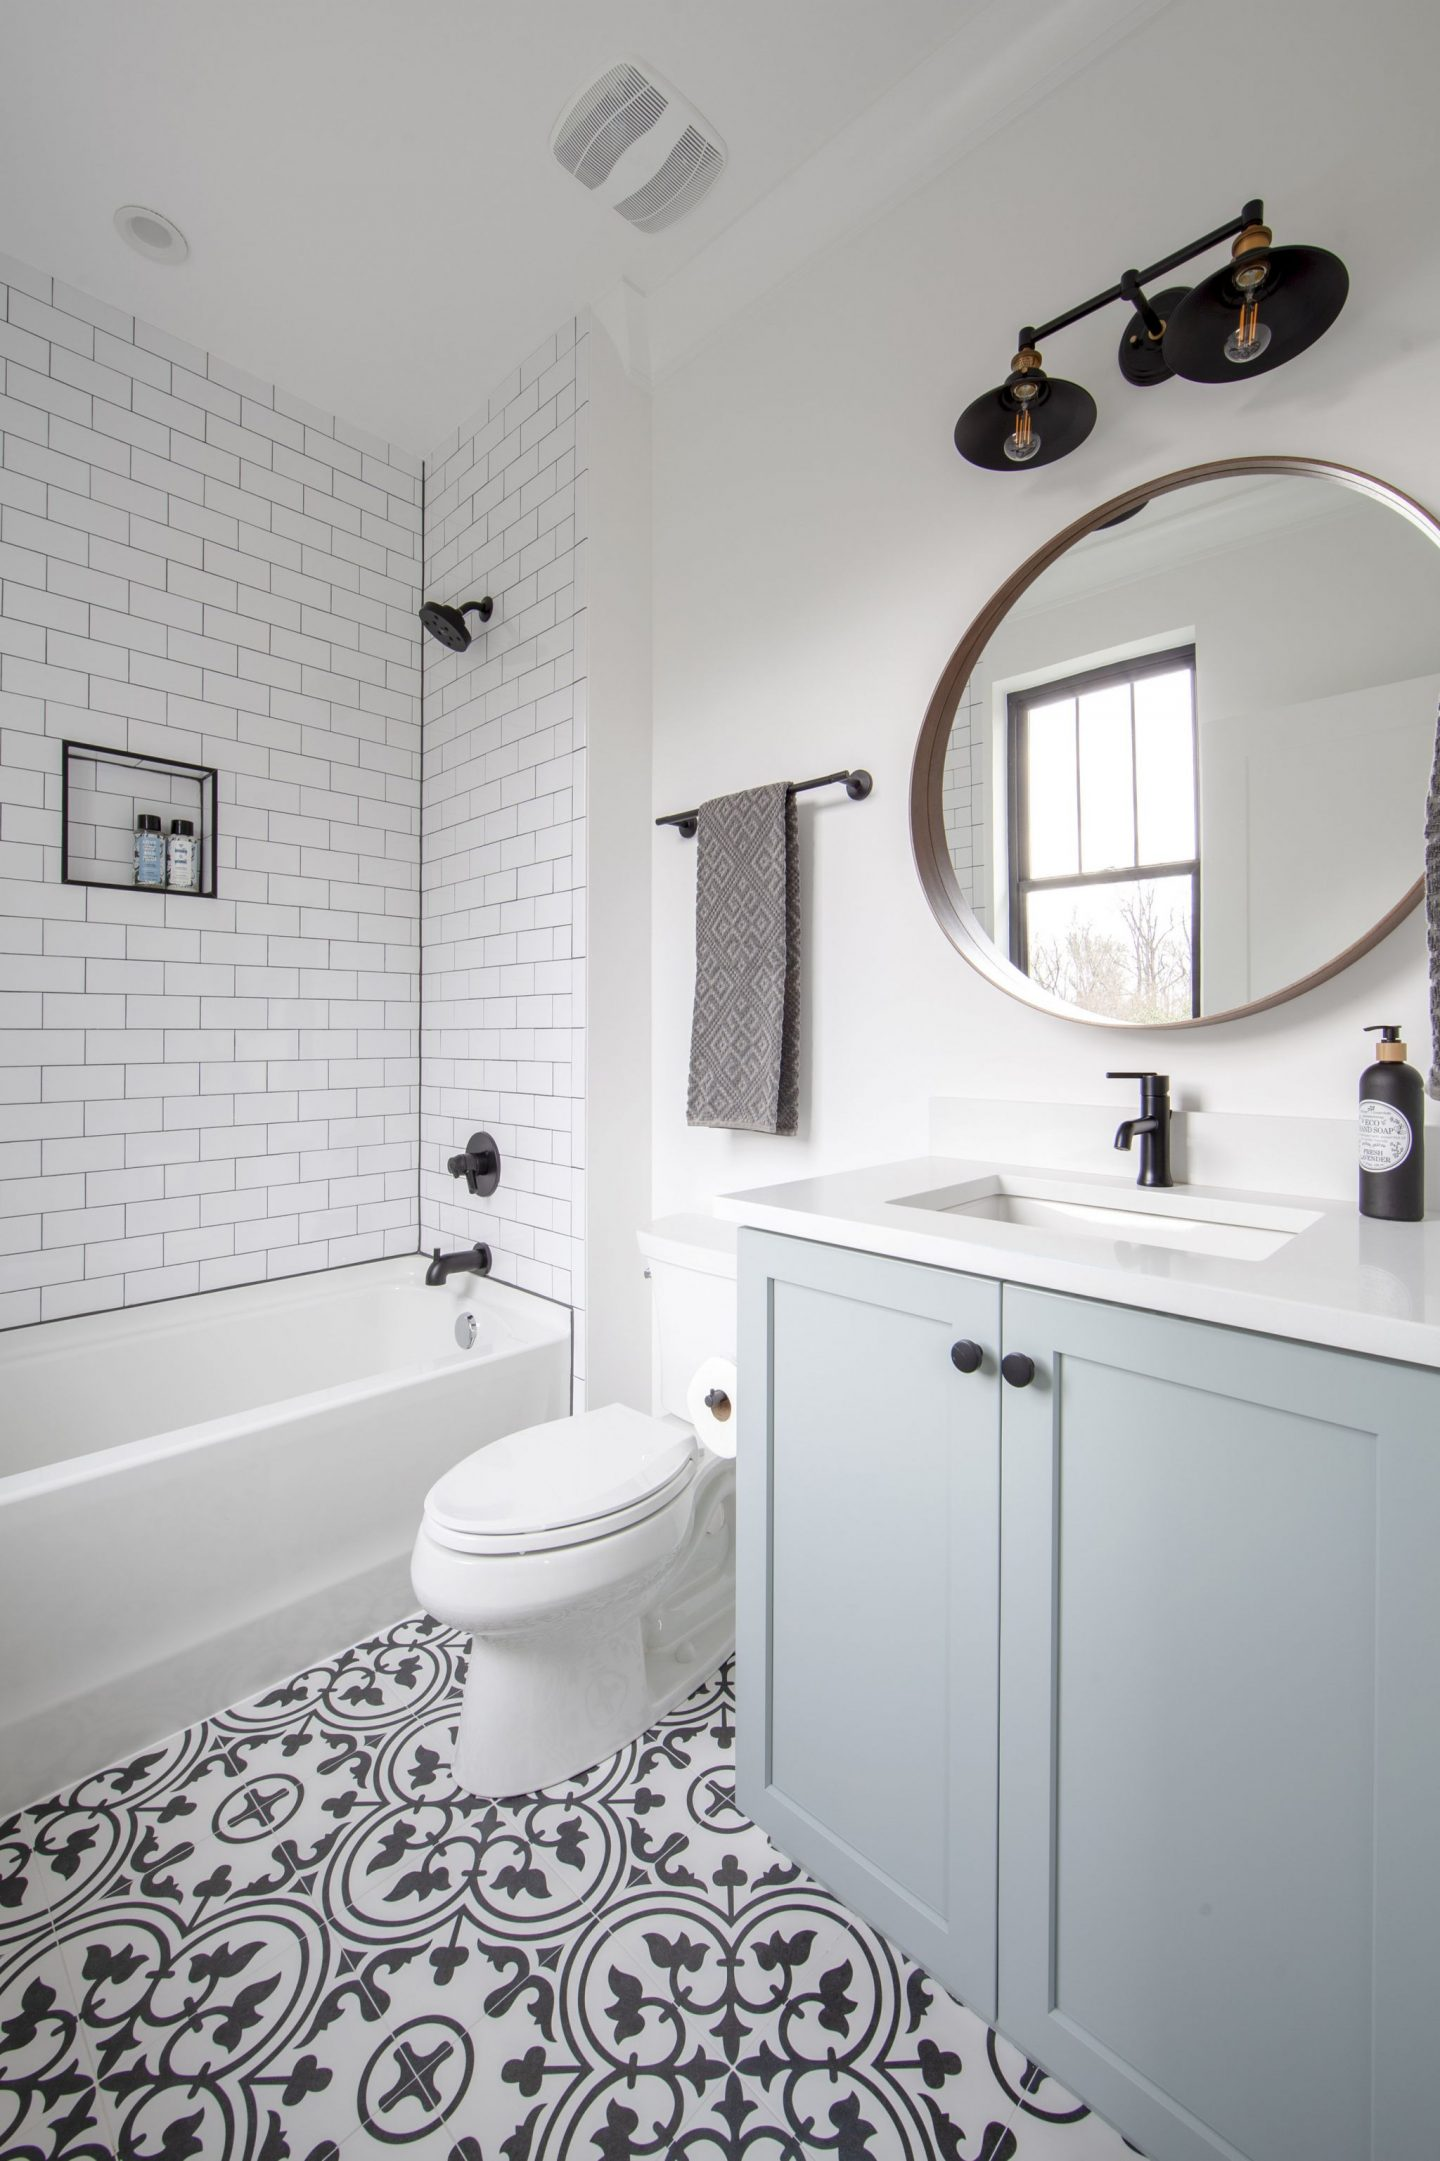 modern farmhouse - bathroom inspiration - Chelsea building group - schwaiger realty group